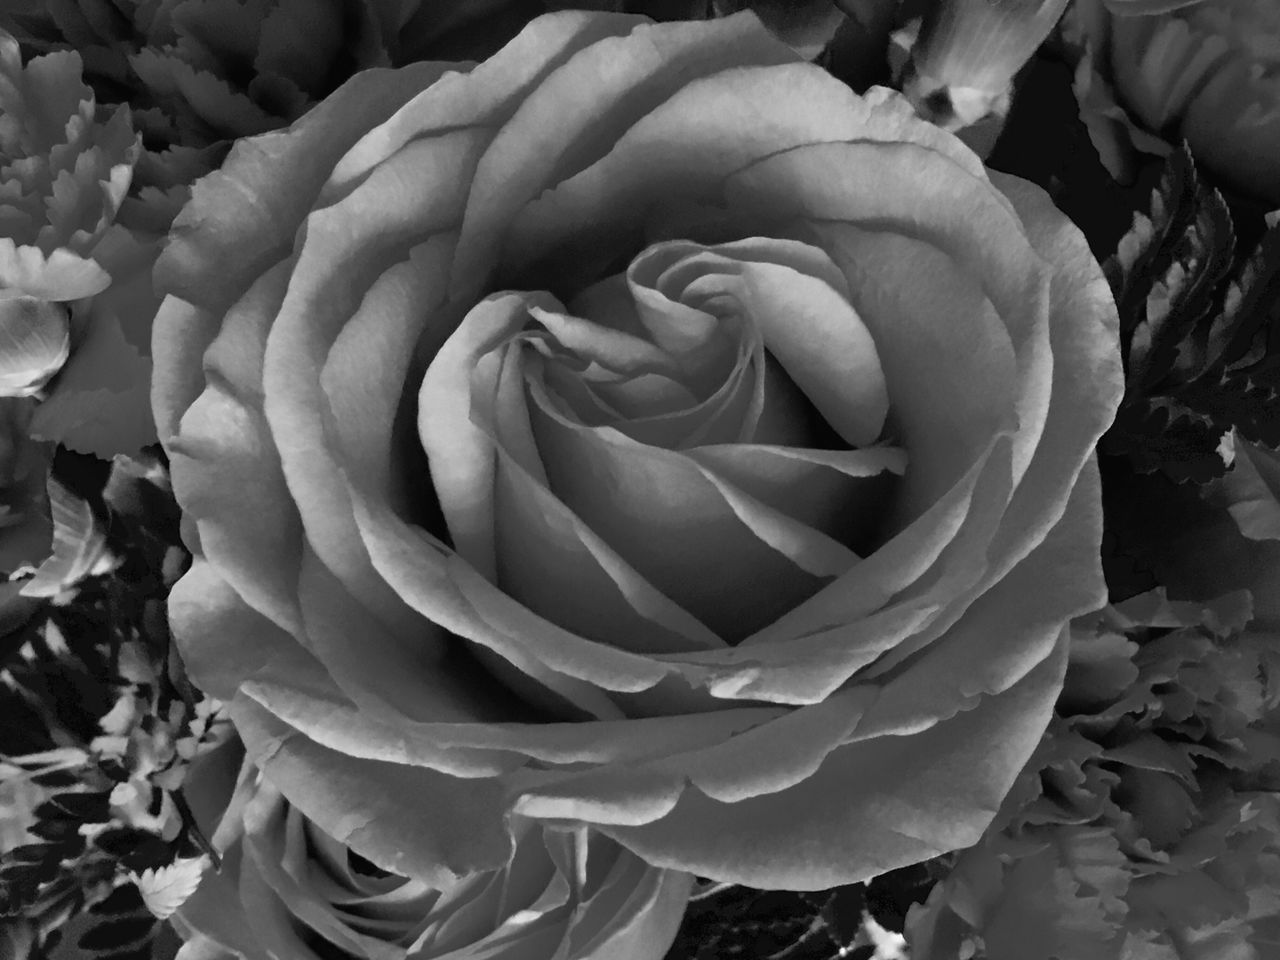 B & White Rose. Flower Petal Beauty In Nature Delicate Beauty Nature EyeEm Team Freshness Rose - Flower Growth Close-up Background Wallpaper Elegance Everywhere Eye4photography  Backgrounds Blackandwhite Black And White Roses Taking Photos Beauty In Nature Floral This Week On Eyeem Things I Like Seeing The World Differently Monochrome